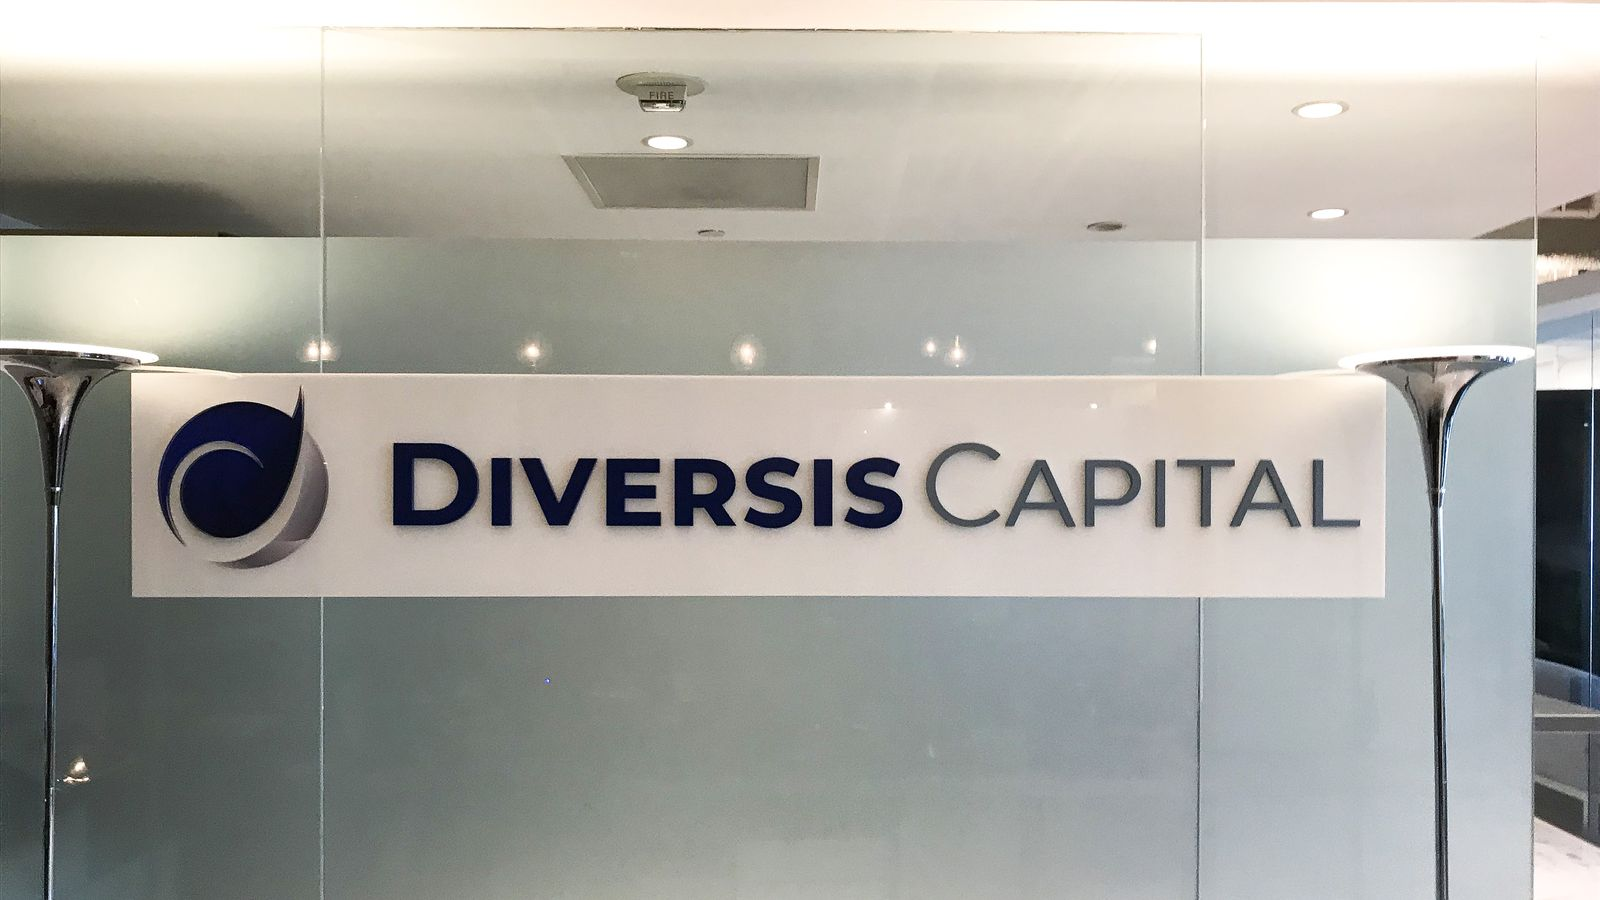 Diversis Captial 3d office sign displaying the company name and logo made of acrylic